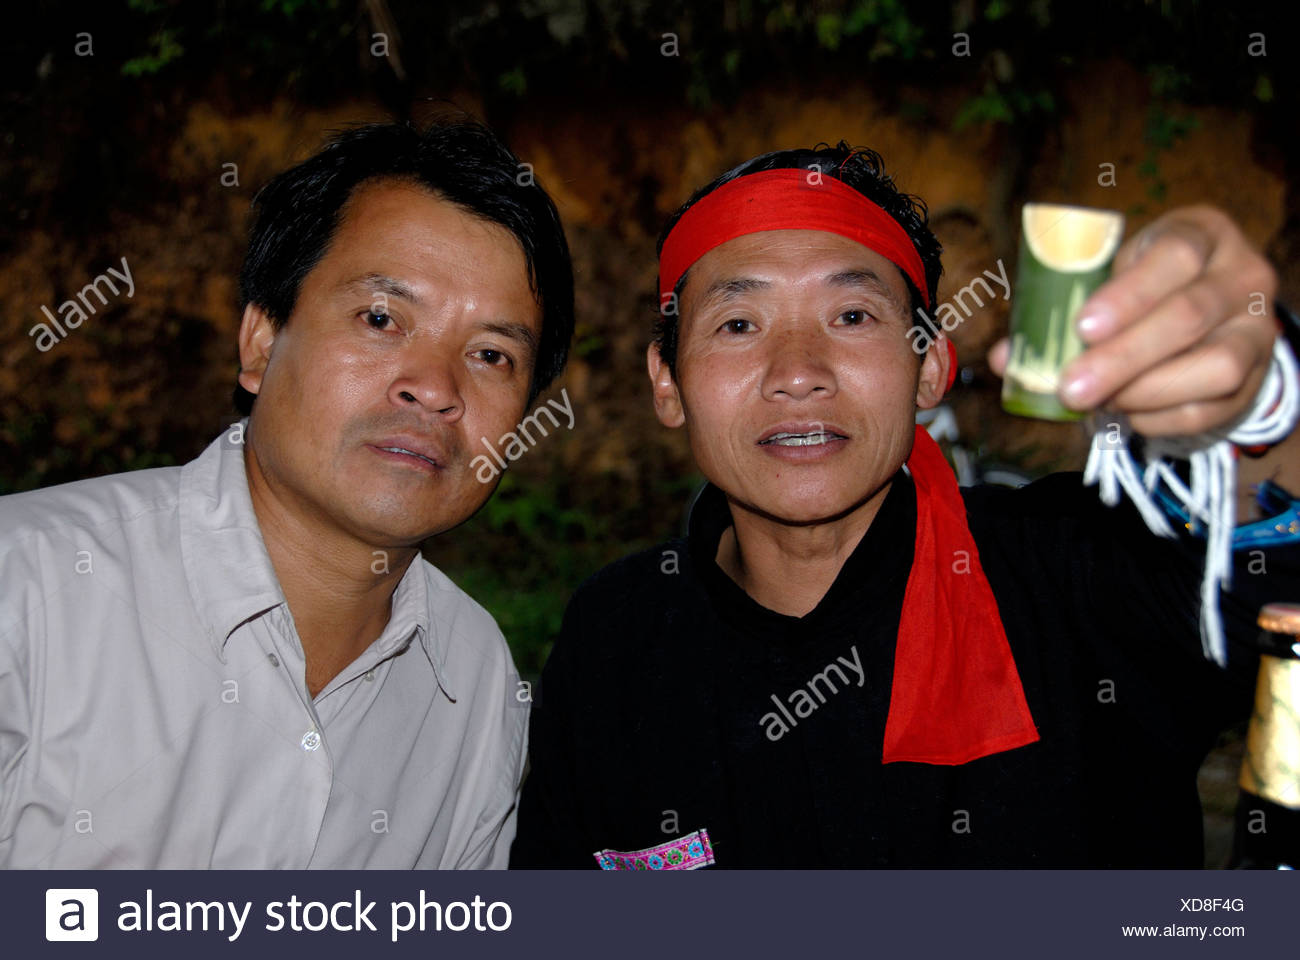 Cheers, men of the Phunoi ethnicity clinking glasses with Lao Lao, Laotian rice wine in bamboo vessels, Phongsali, Laos, Southe - Stock Image